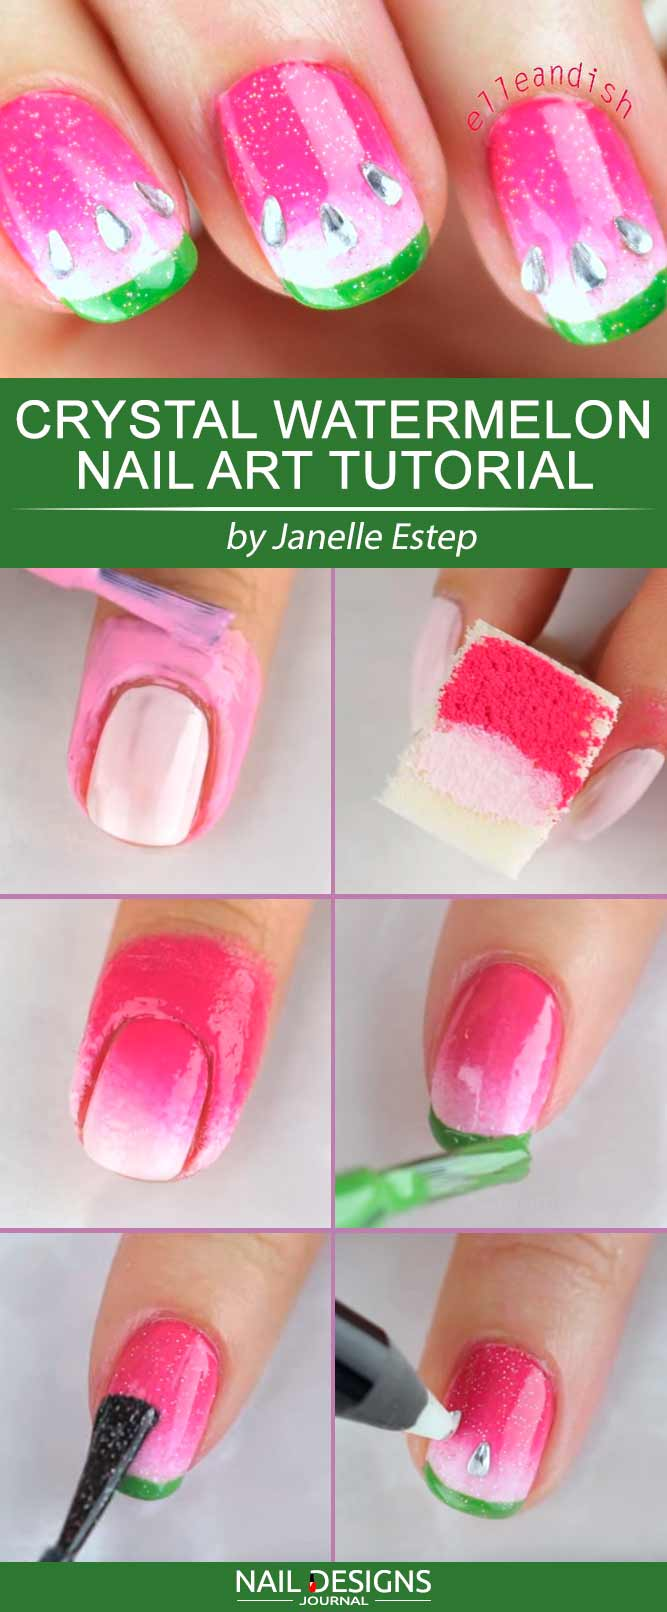 Crystal Watermelon Nail Art #watermelonnails #summernails #cutenails